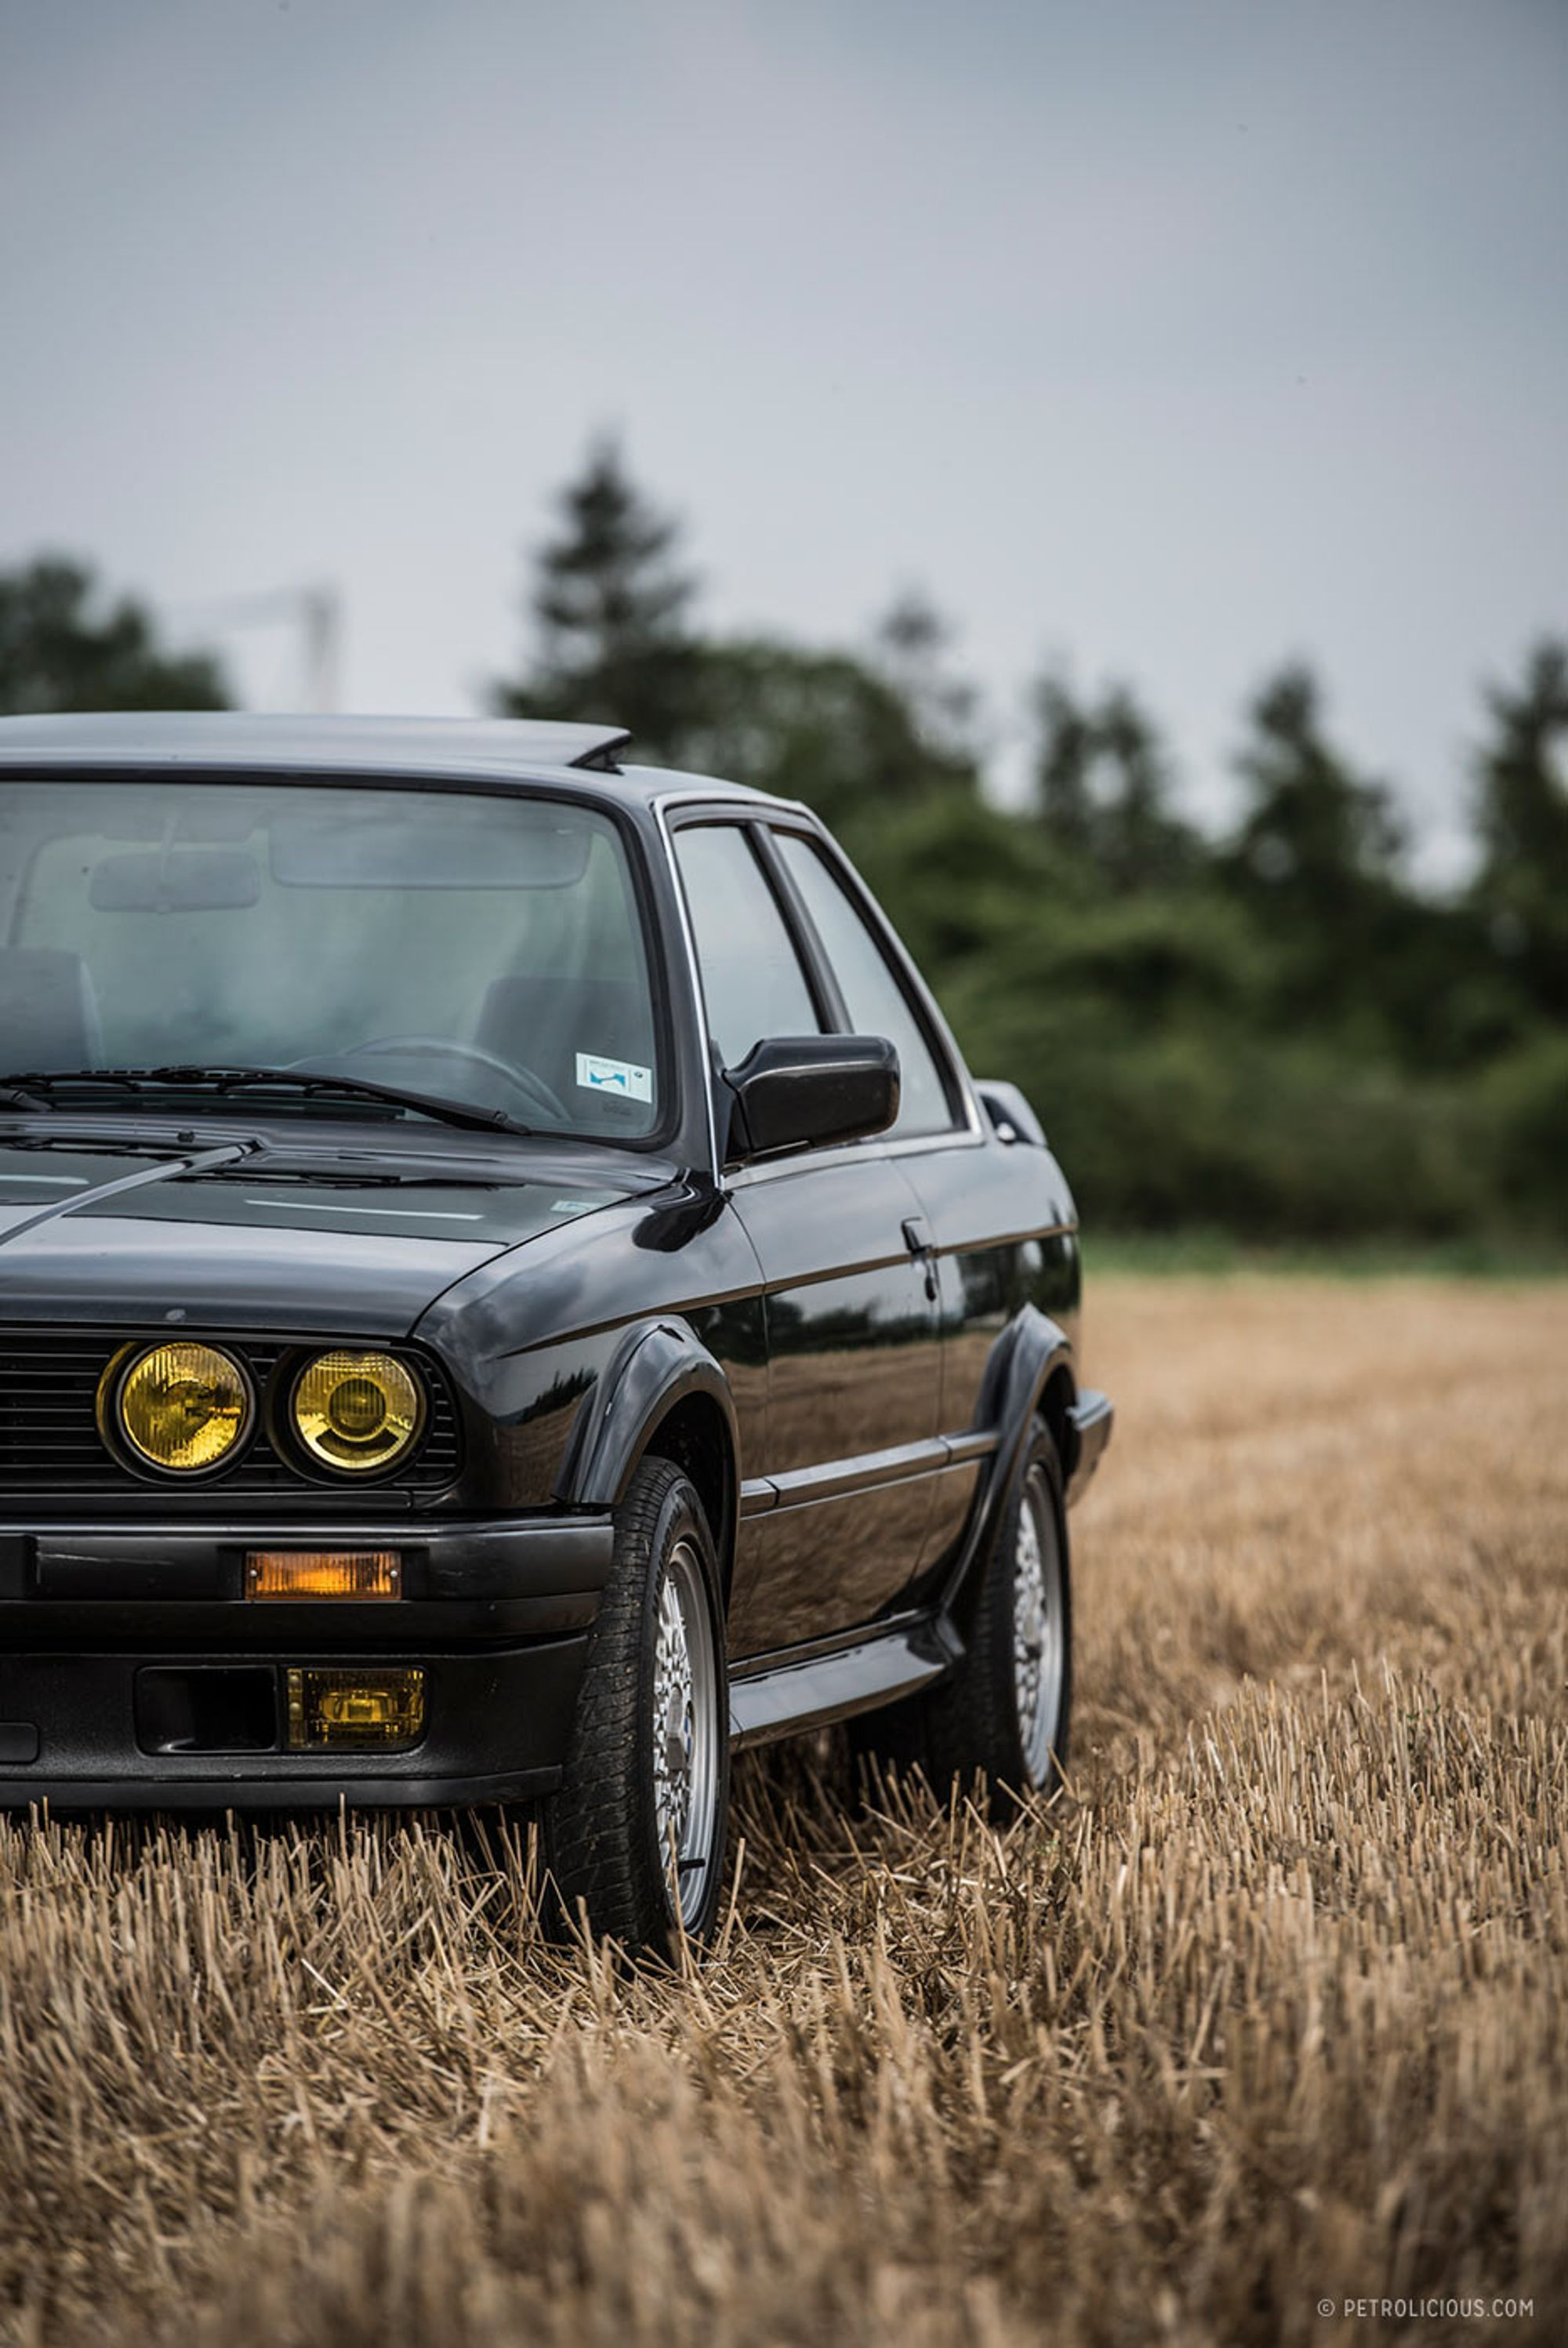 The Bmw 325ix Is The Coolest E30 Of Them All Car Wheels Bmw Classic Cars Ford Mustang Car